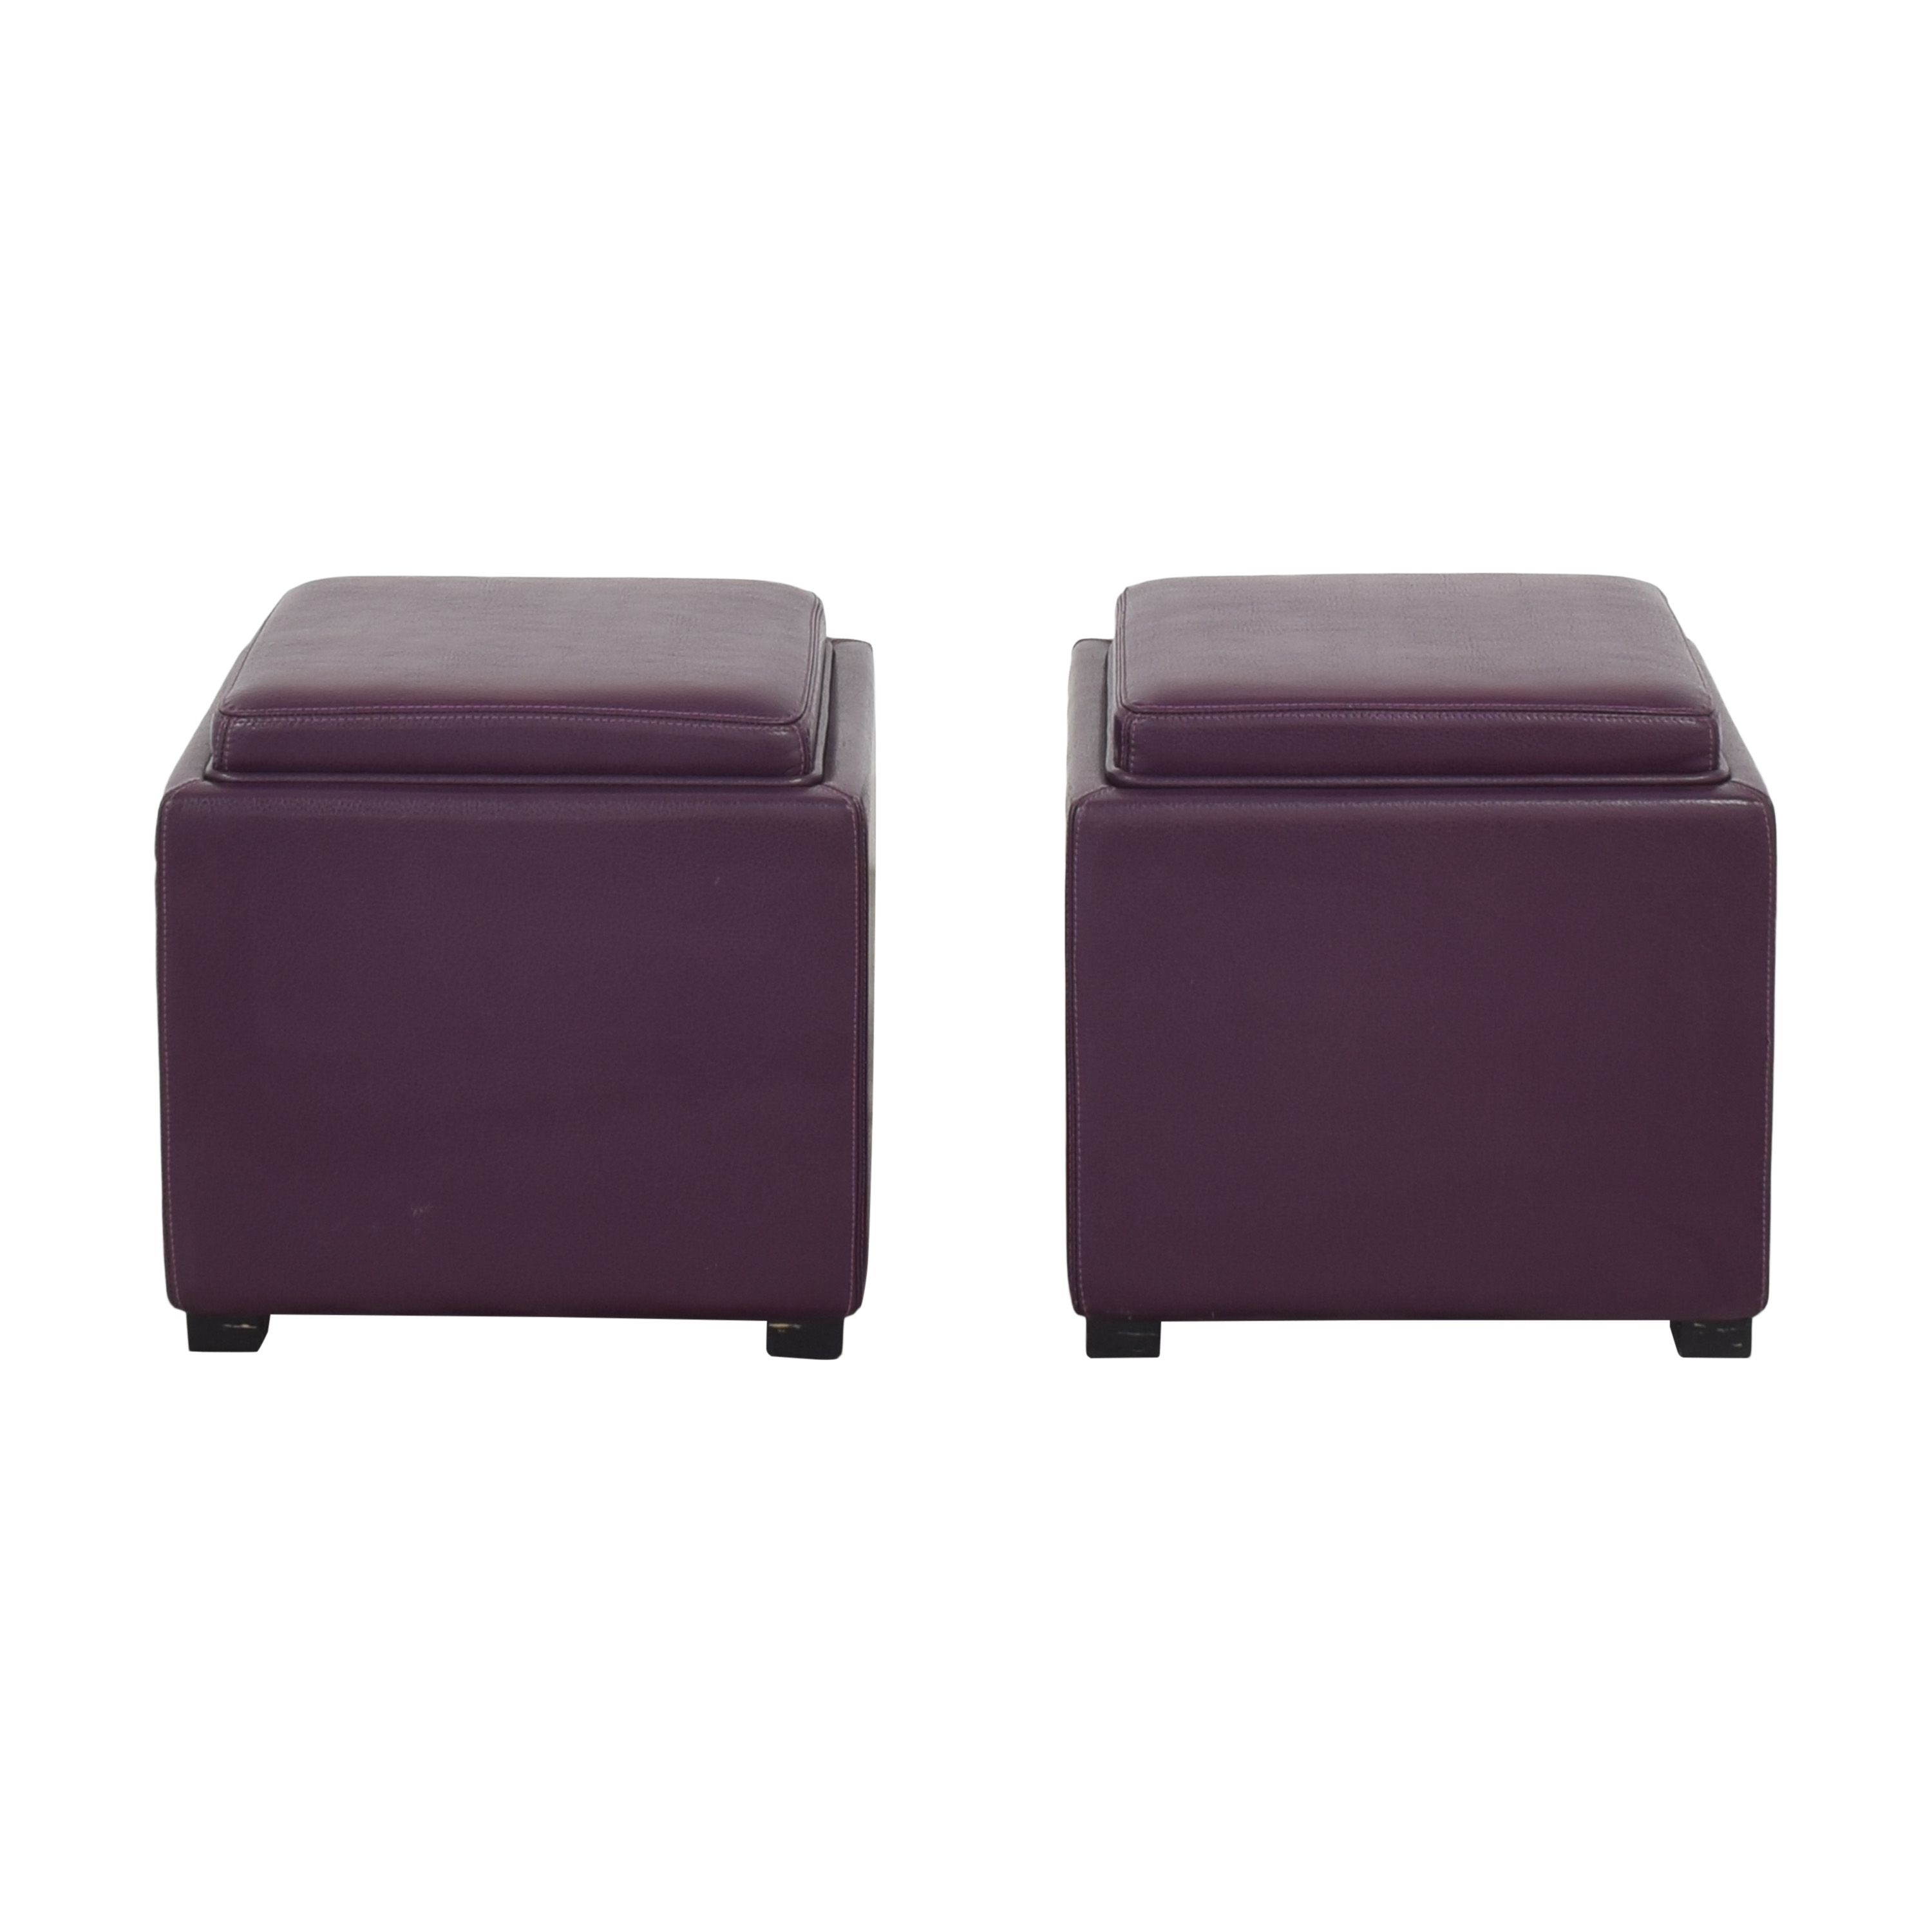 Crate & Barrel Crate & Barrel Stow Storage Ottomans on sale